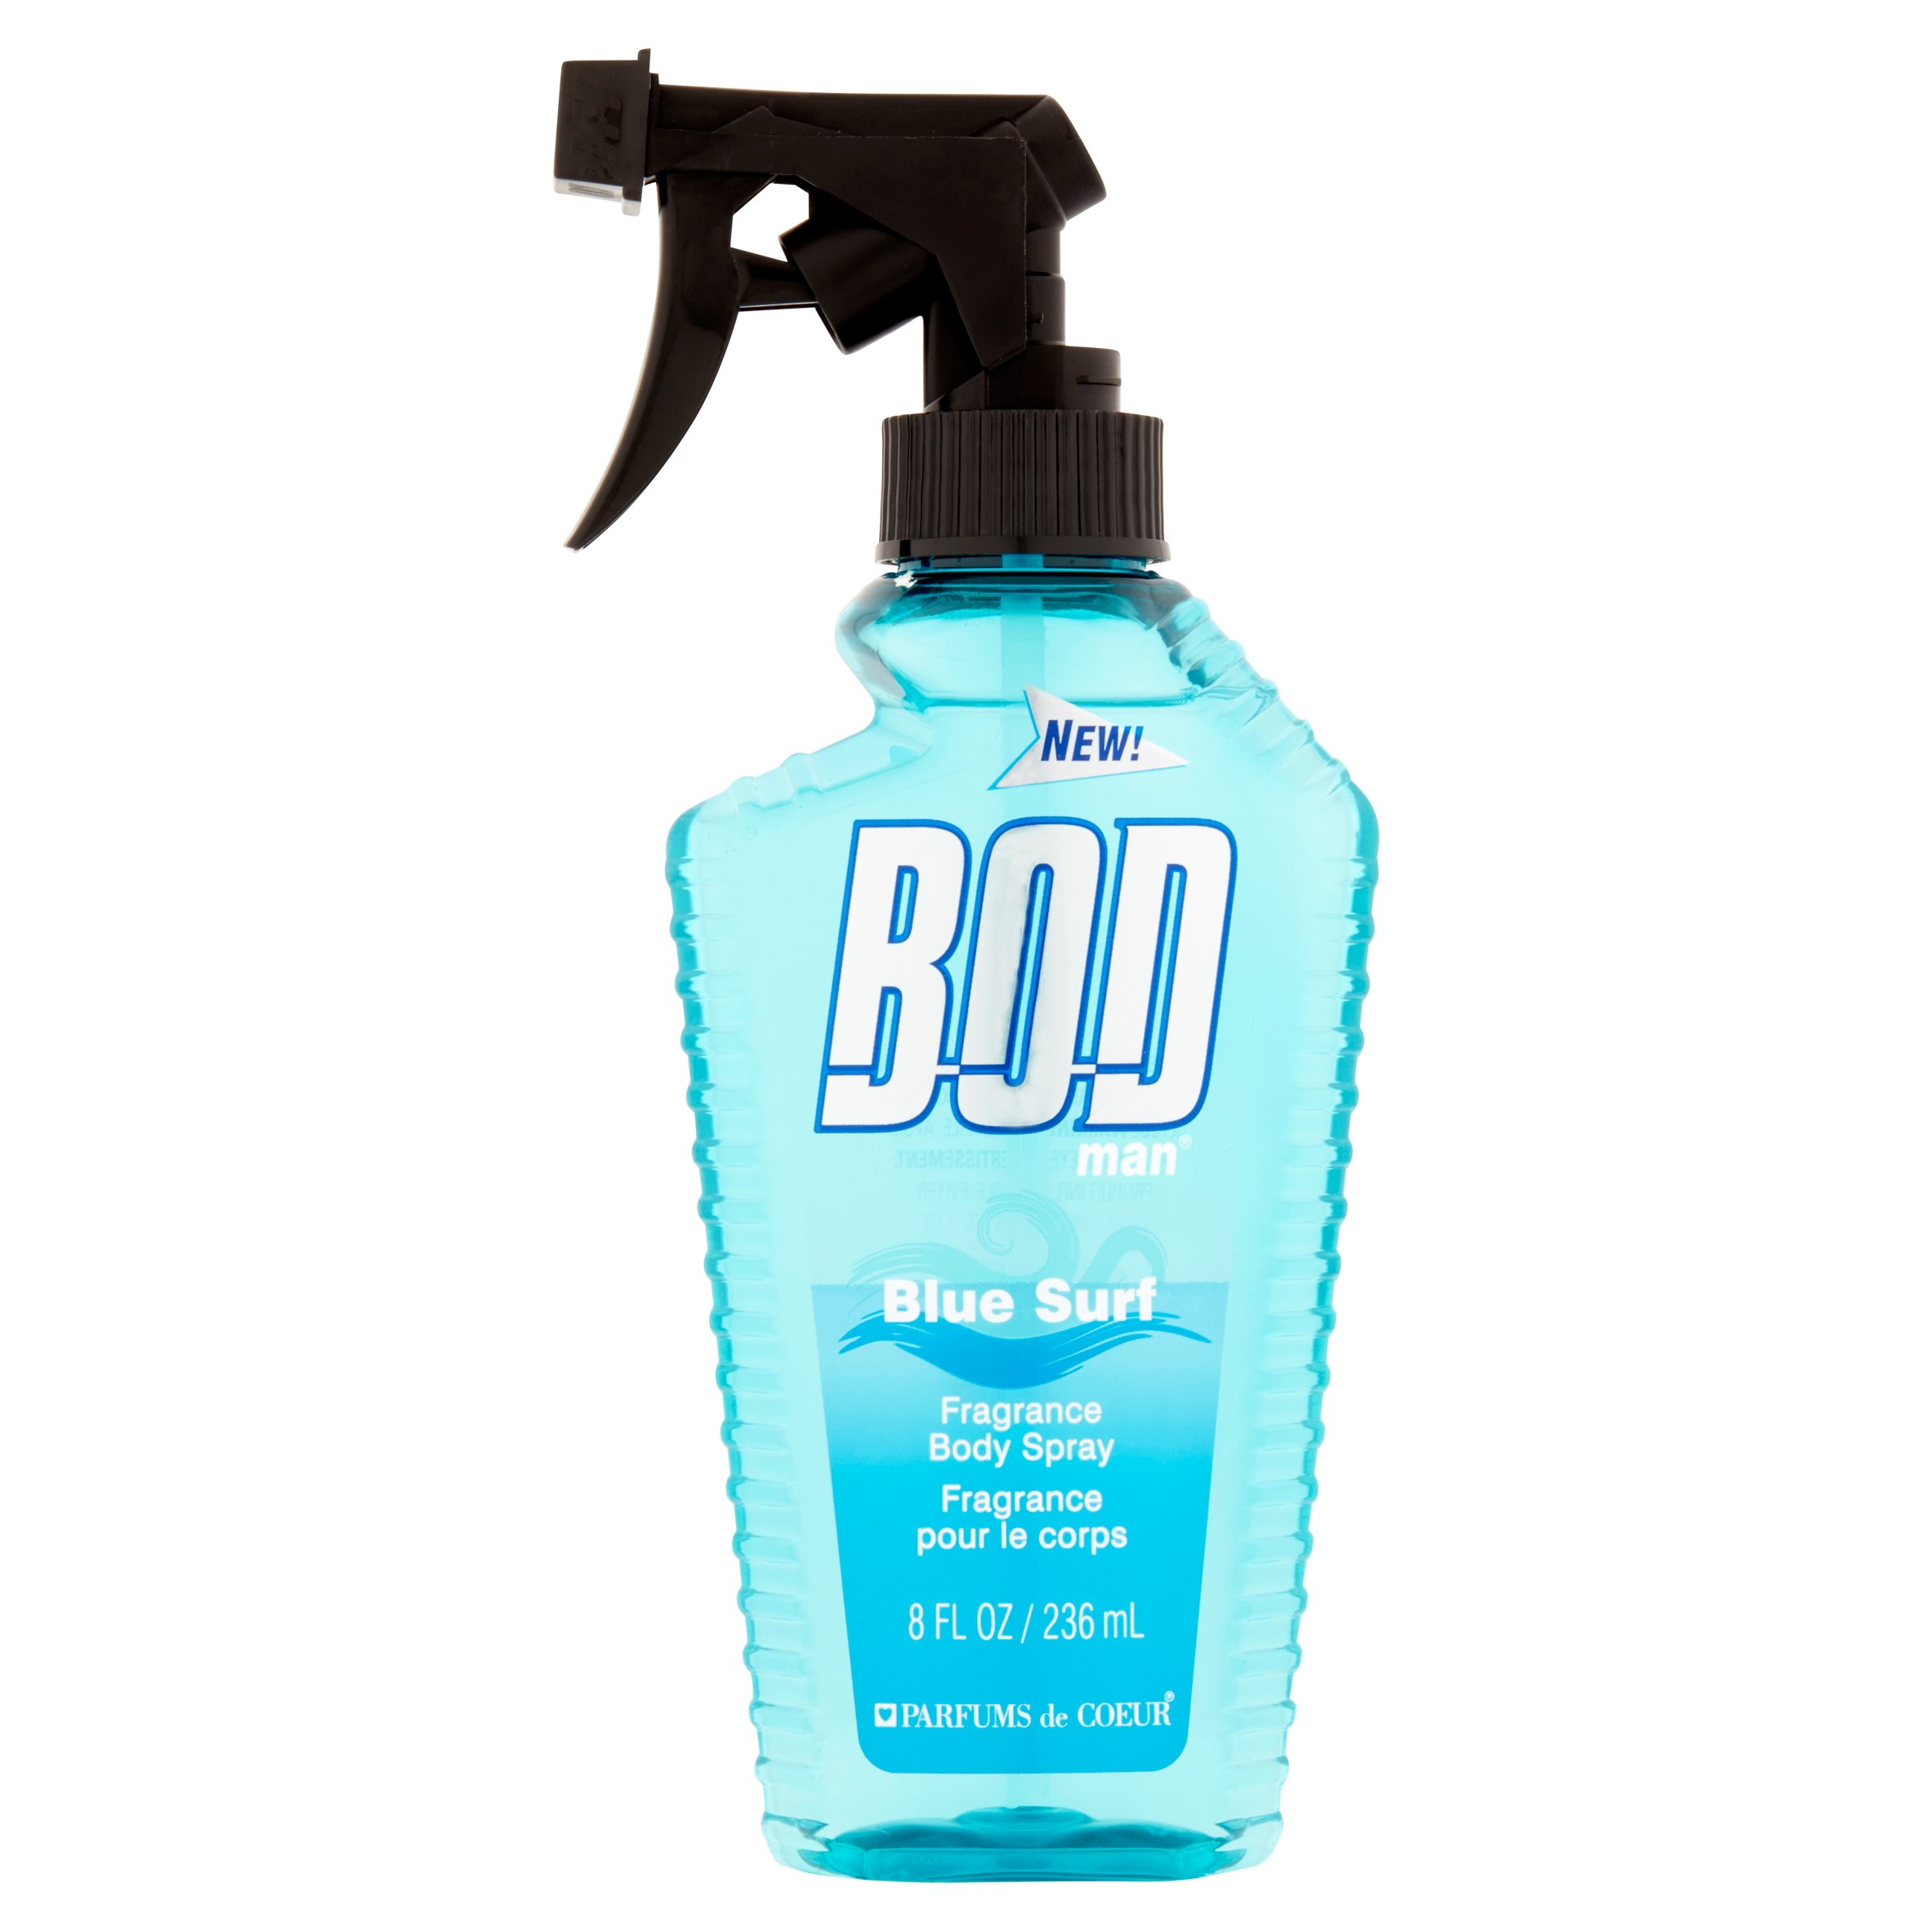 BOD Man Blue Surf Fragrance Body Spray, 8 fl oz